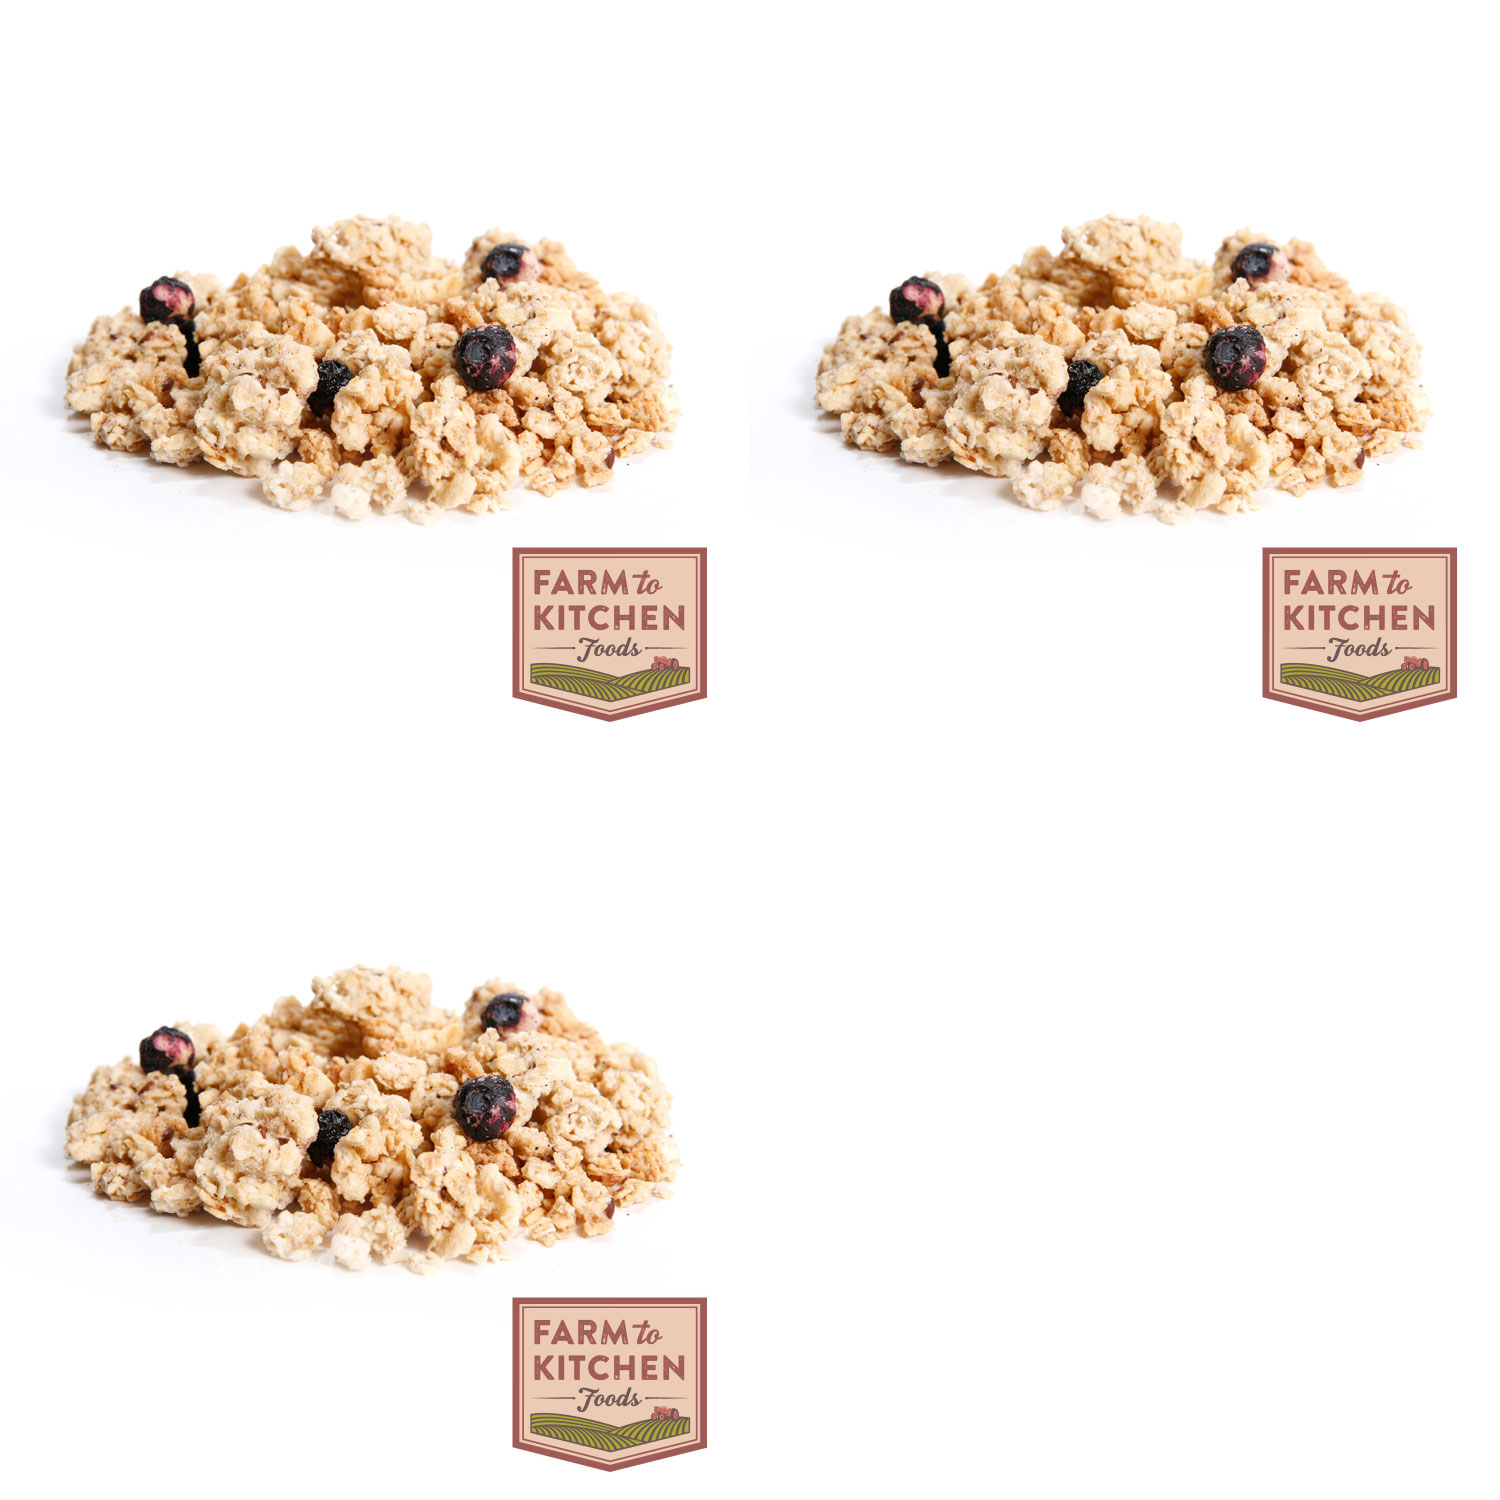 Farm to Kitchen Foods Blueberry Flax Granola - Buy 2 Get 1 Free